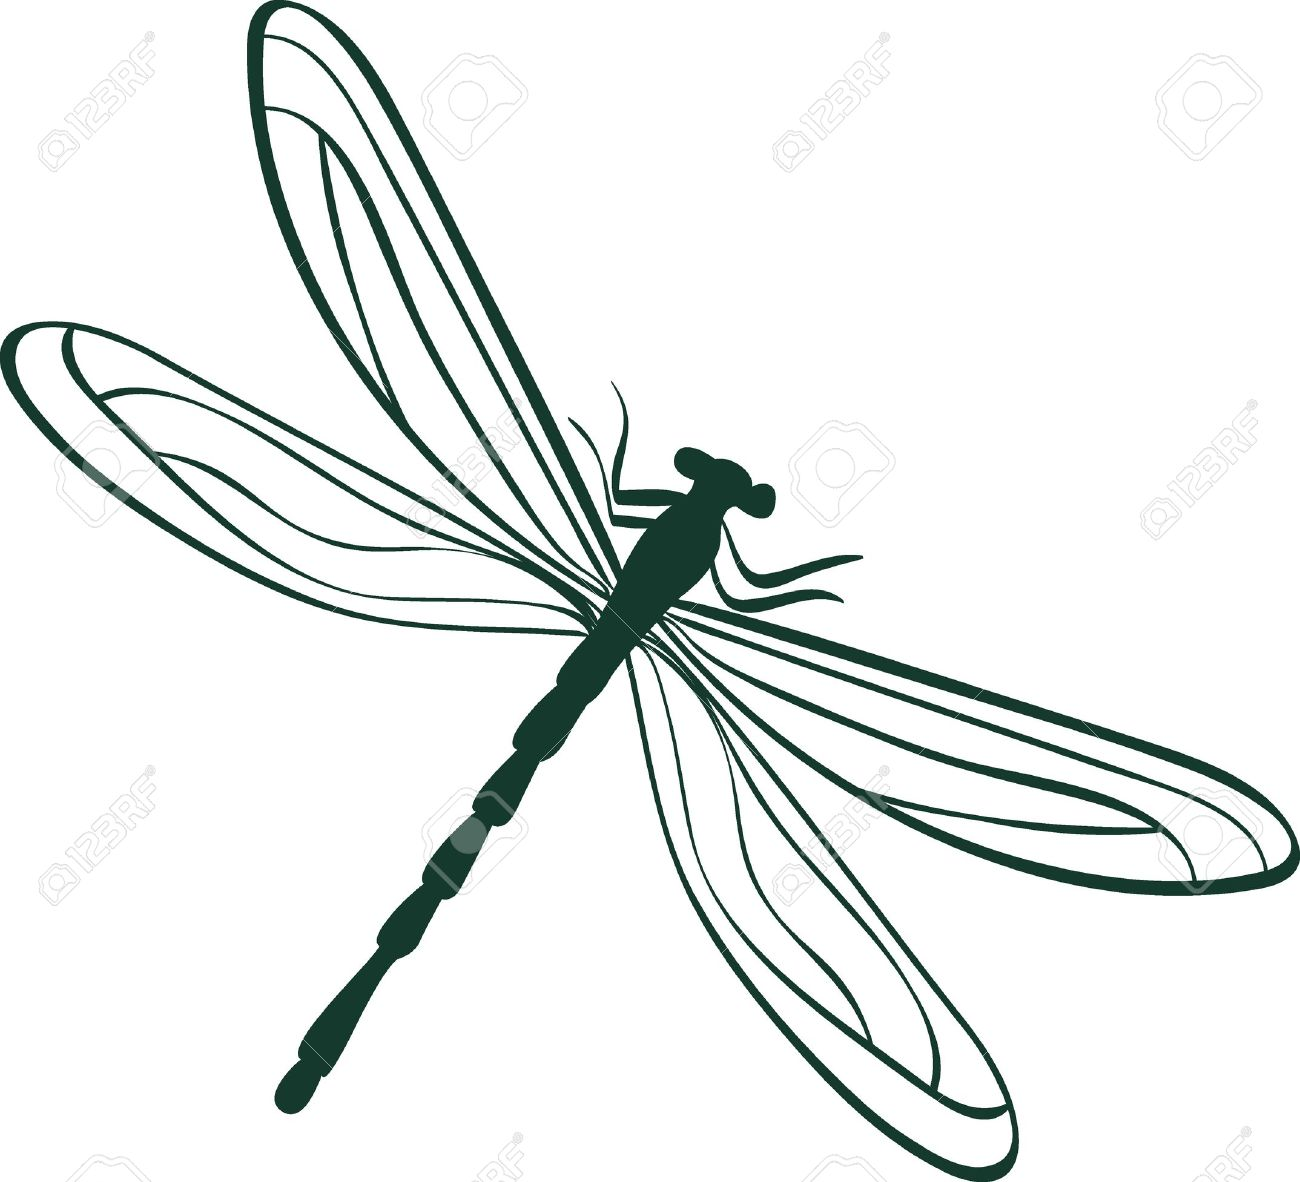 dragonfly tattoo designs stock photos royalty free dragonfly